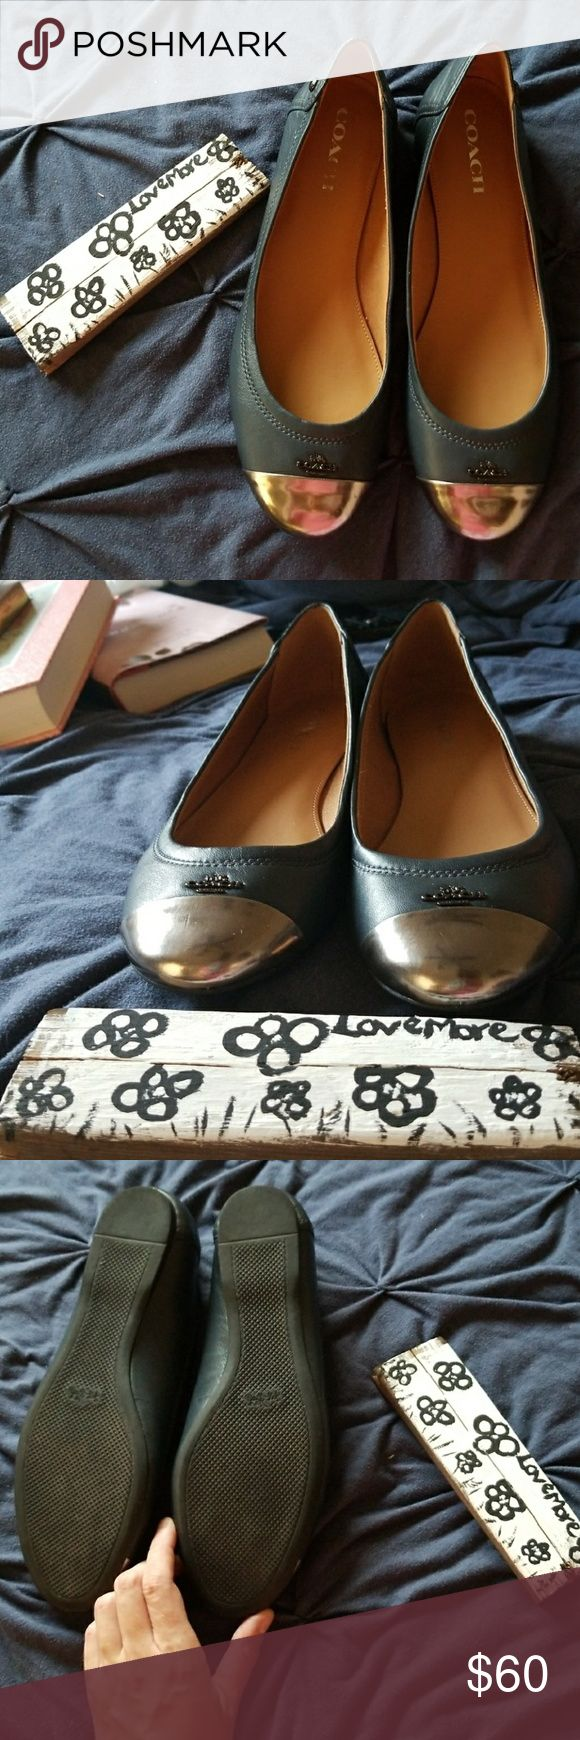 Navy blue and silver toed coach flats Navy blue and silver toed coach flats, worn one time. Coach Shoes Flats & Loafers